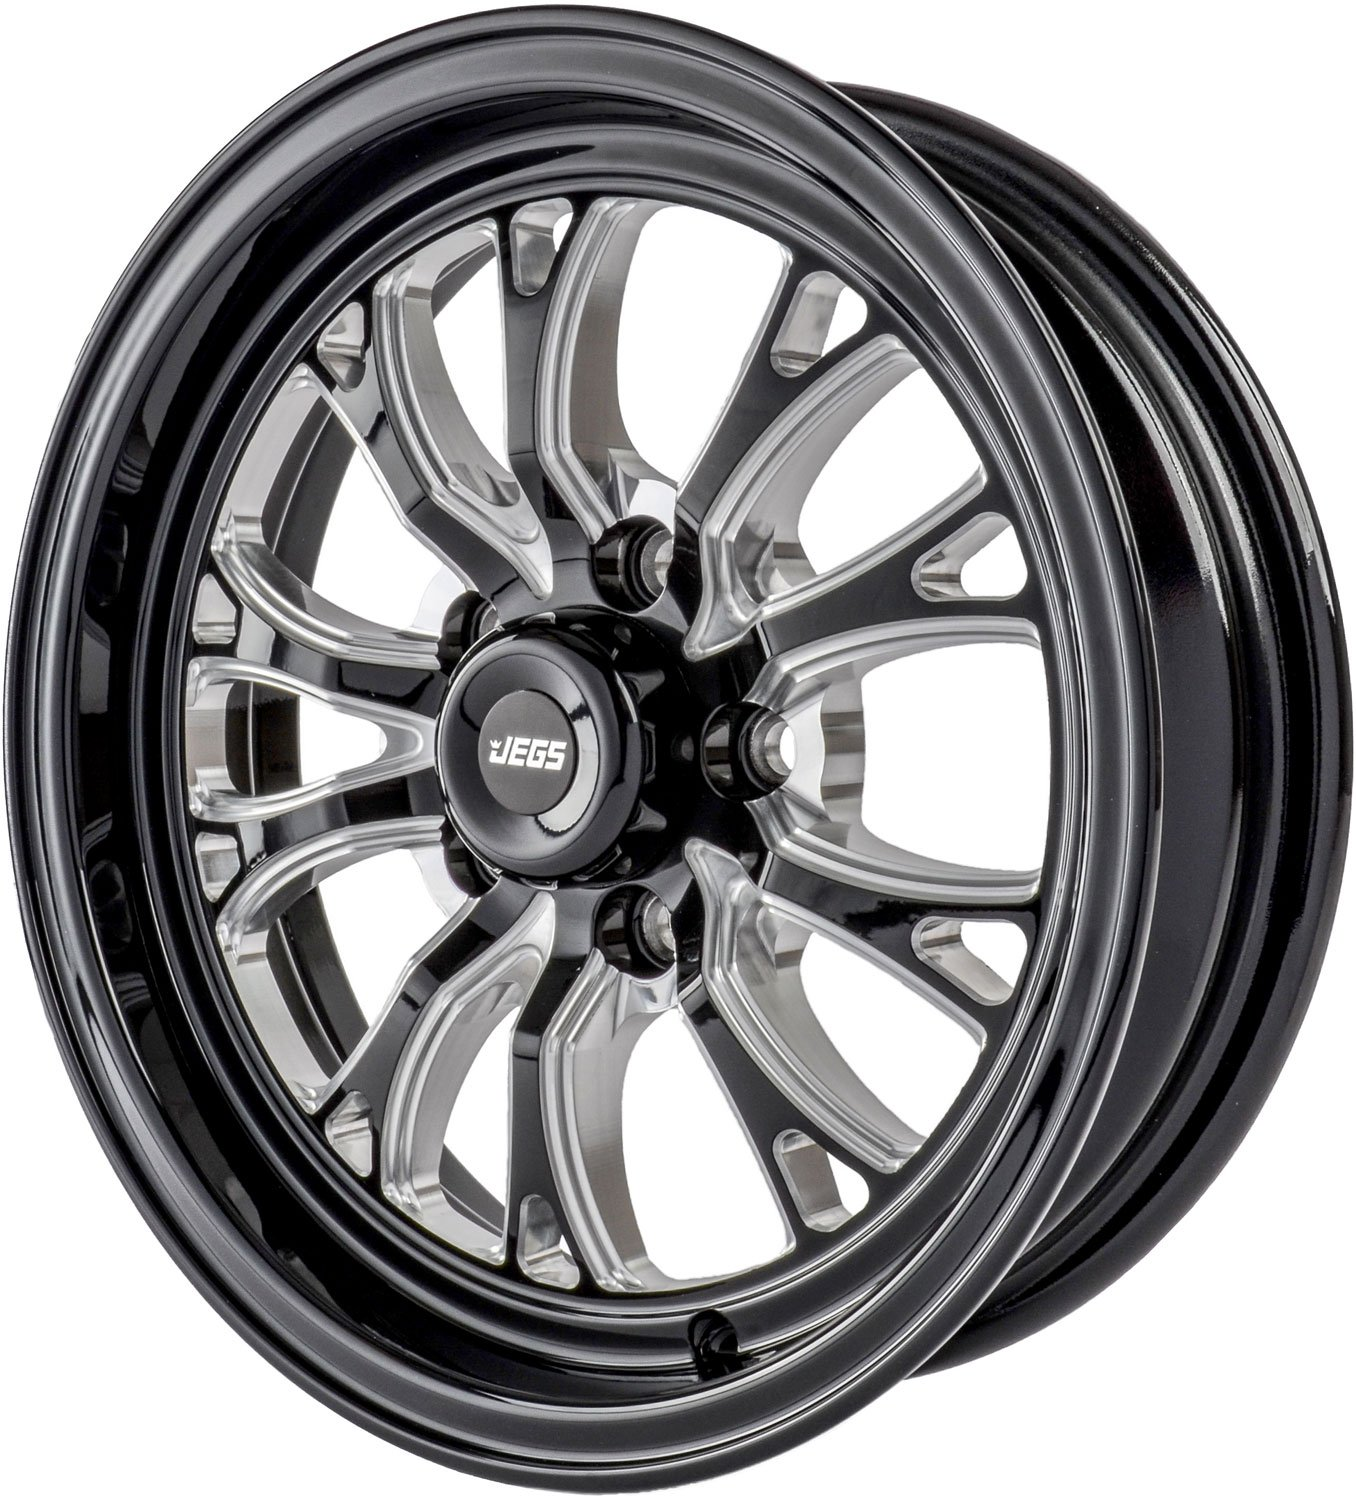 product picture of JEGS SRR spike wheel